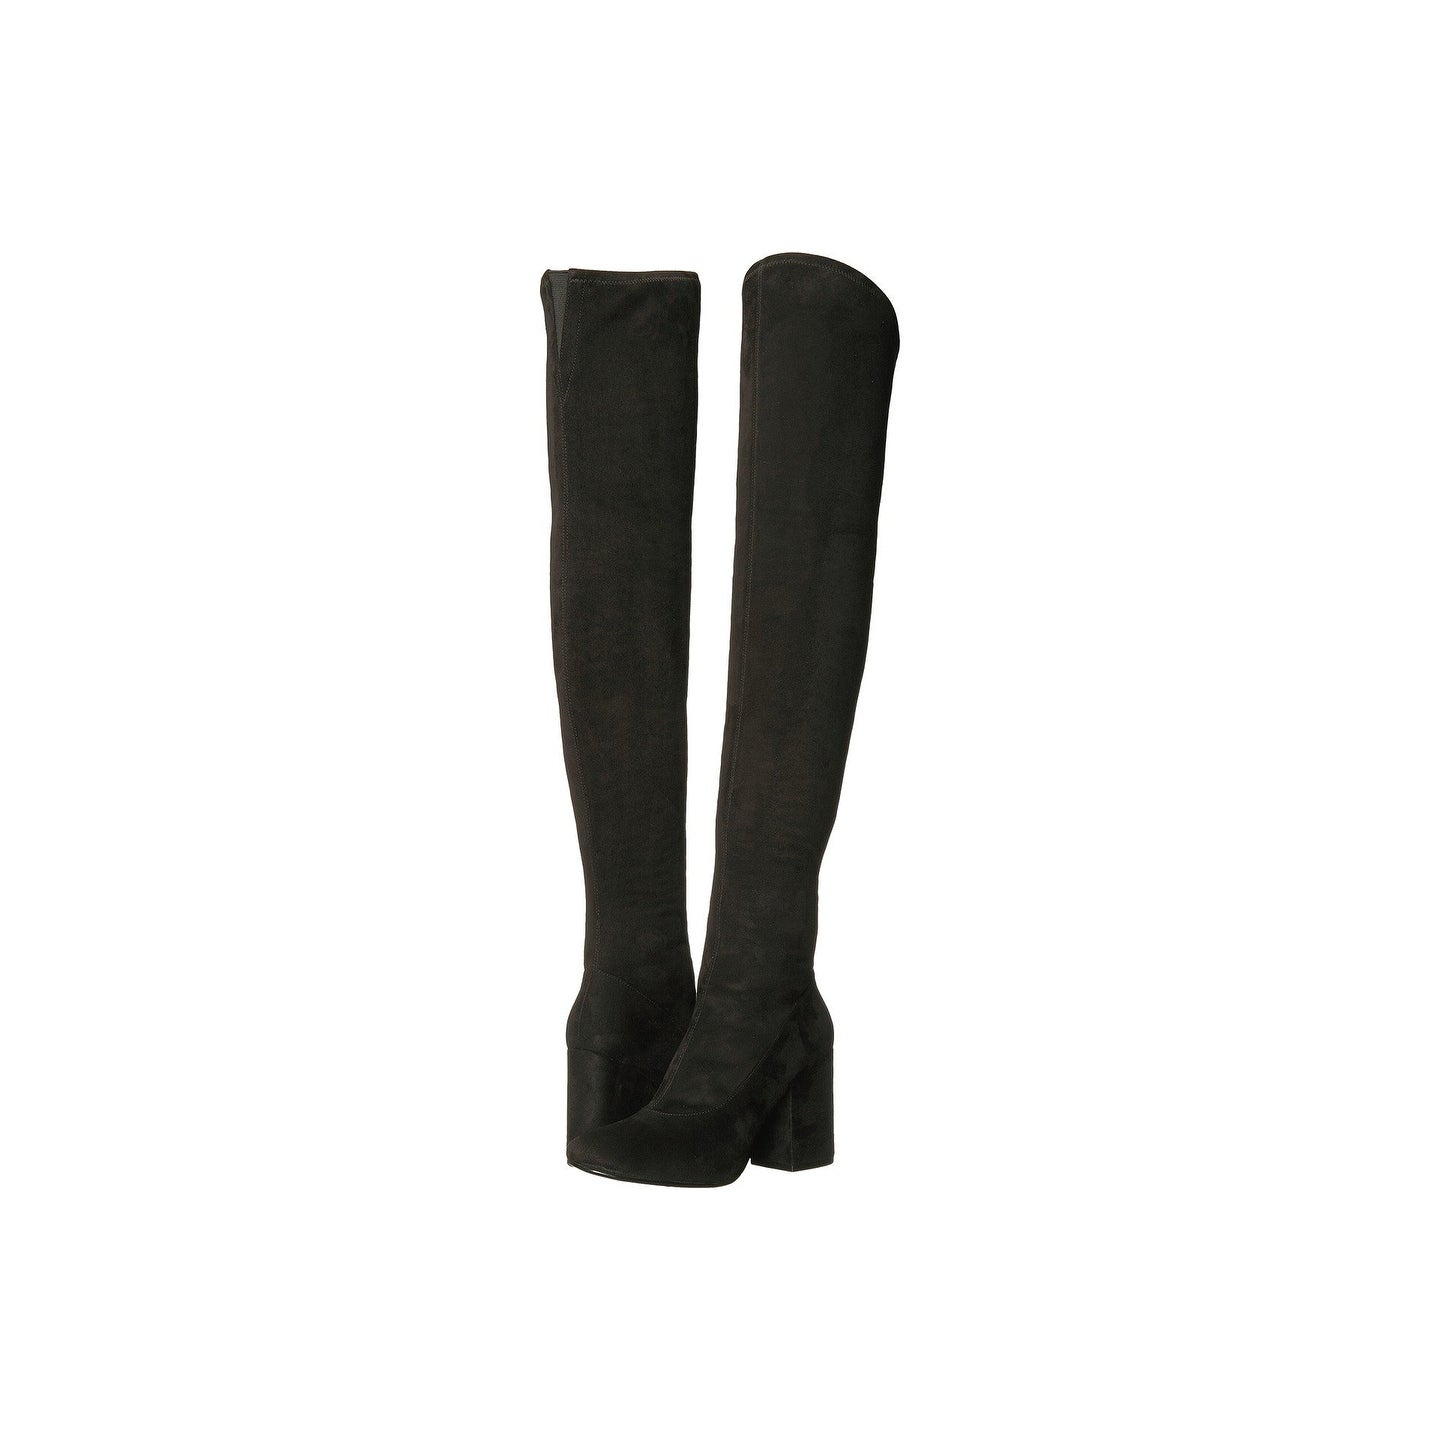 15a03e1a14a Shop Marc Fisher Womens larrine Fabric Pointed Toe Over Knee Fashion Boots  - Free Shipping On Orders Over  45 - Overstock - 21395497